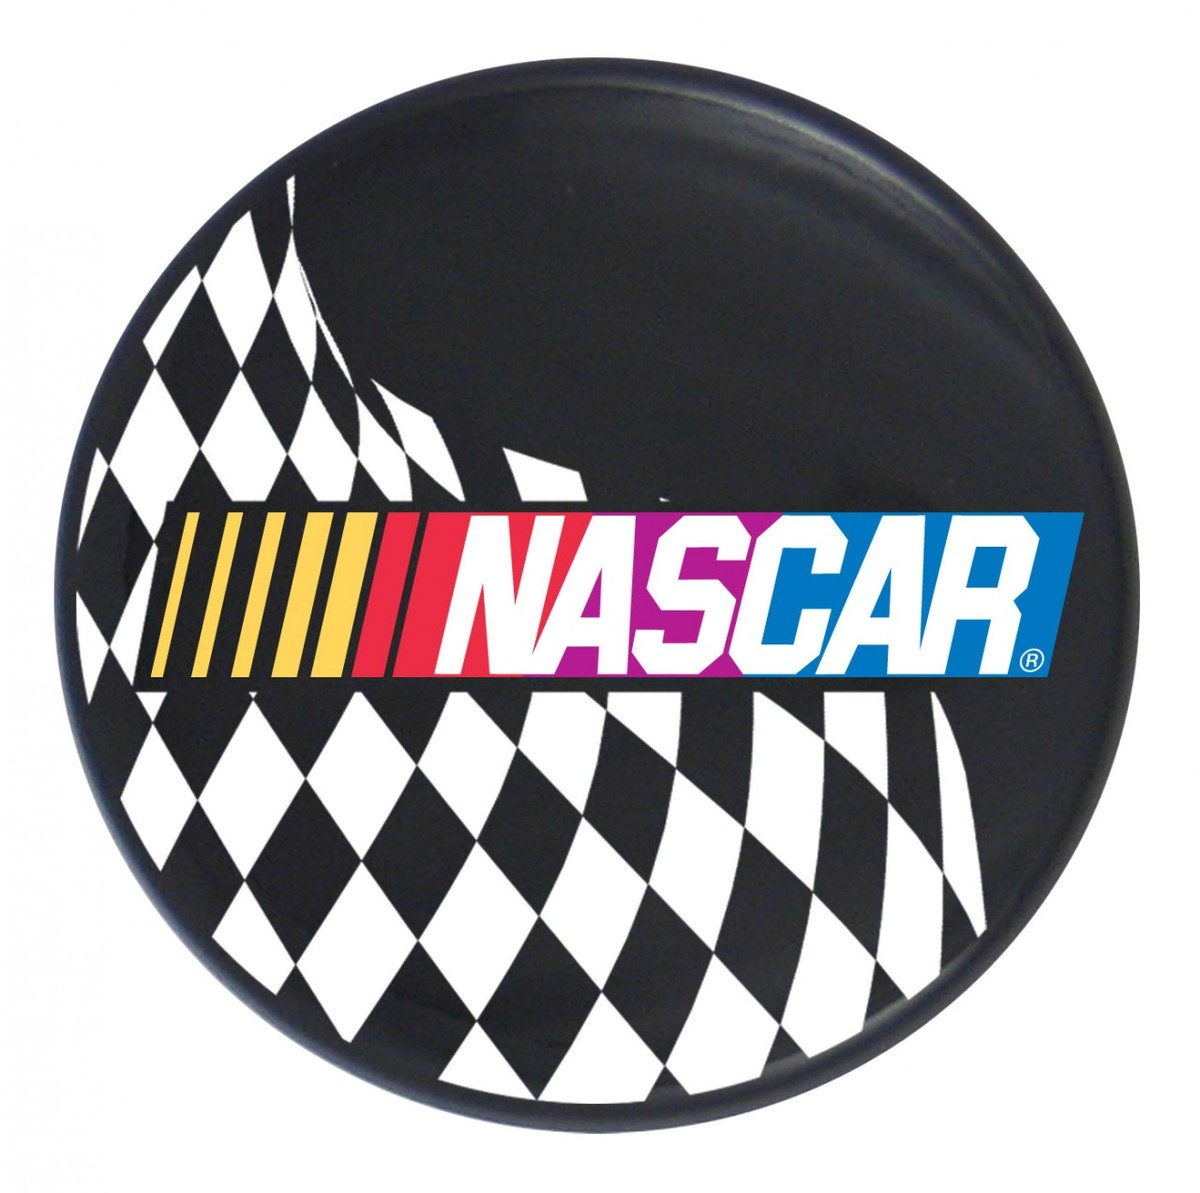 NASCAR_Horn_Button_Black__09864.1340117012.1200.1200.jpg